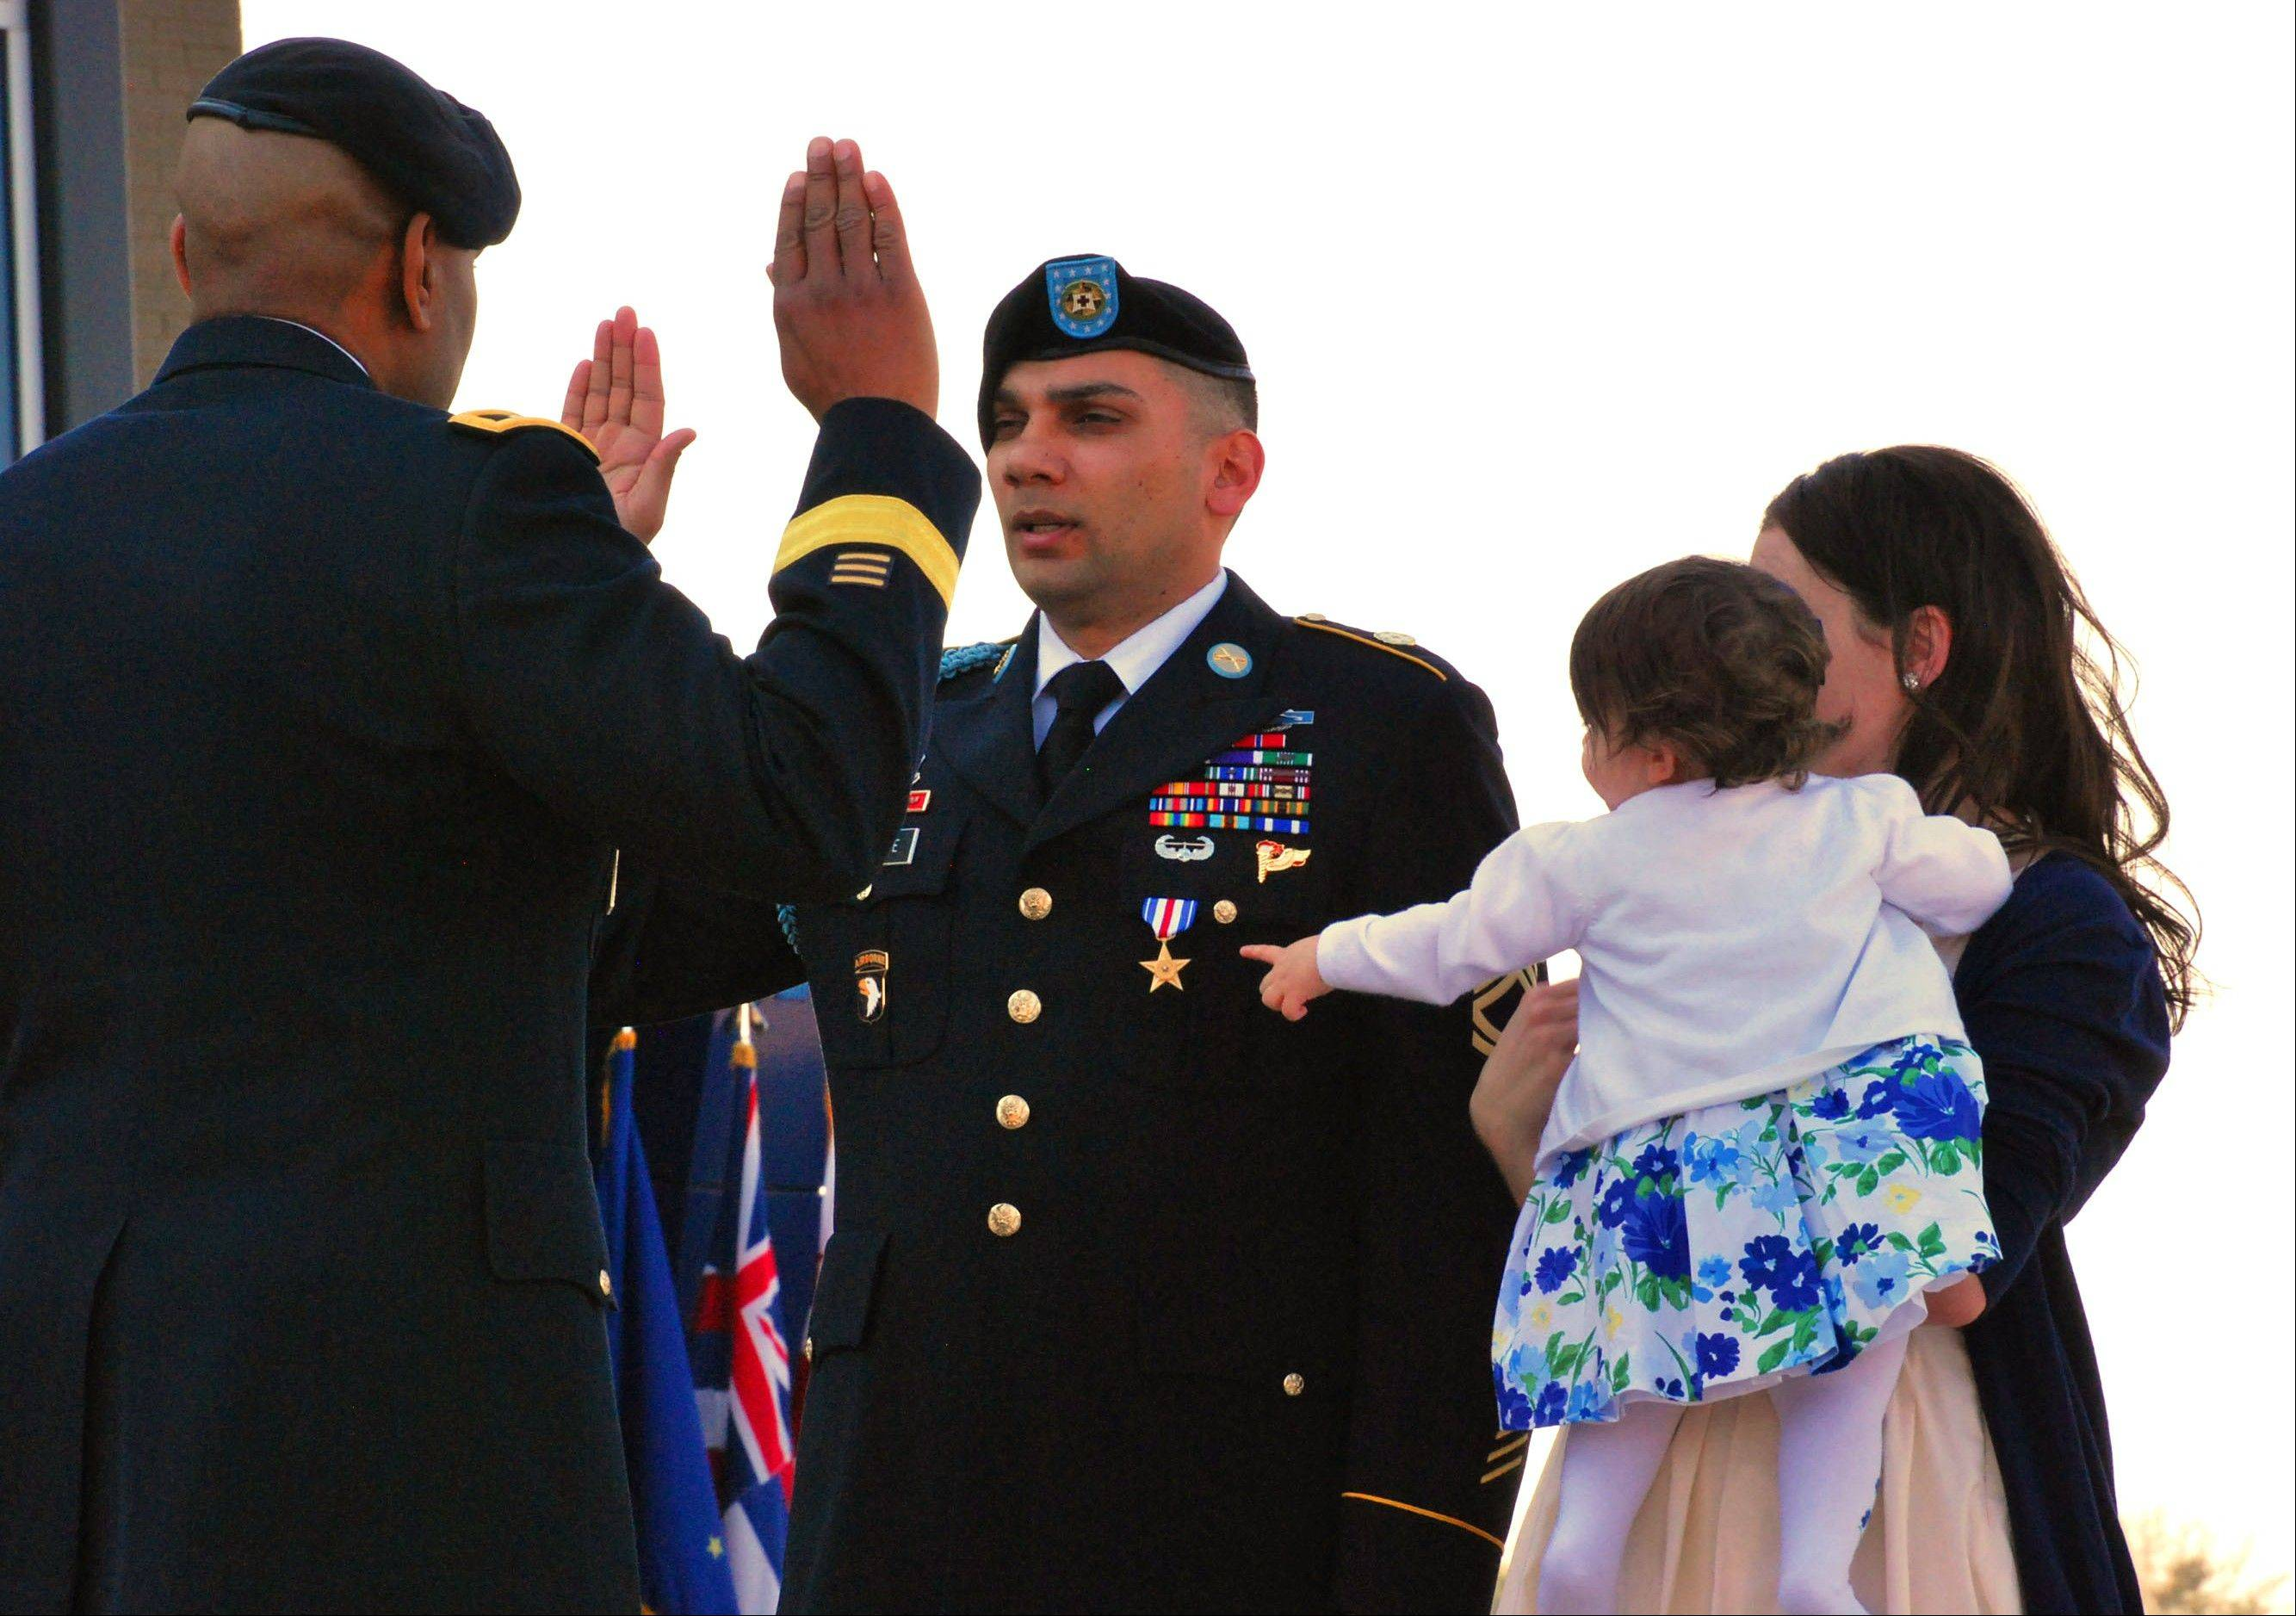 Sgt. 1st Class Matthew Loheide re-enlists in the Army on Friday, April 5, at Fort Campbell, Ky., while his daughter, Annabella, held by Marianne Loheide, points to his Silver Star. Loheide received the Silver Star for his actions to evacuate wounded soldiers while in Afghanistan in 2010.